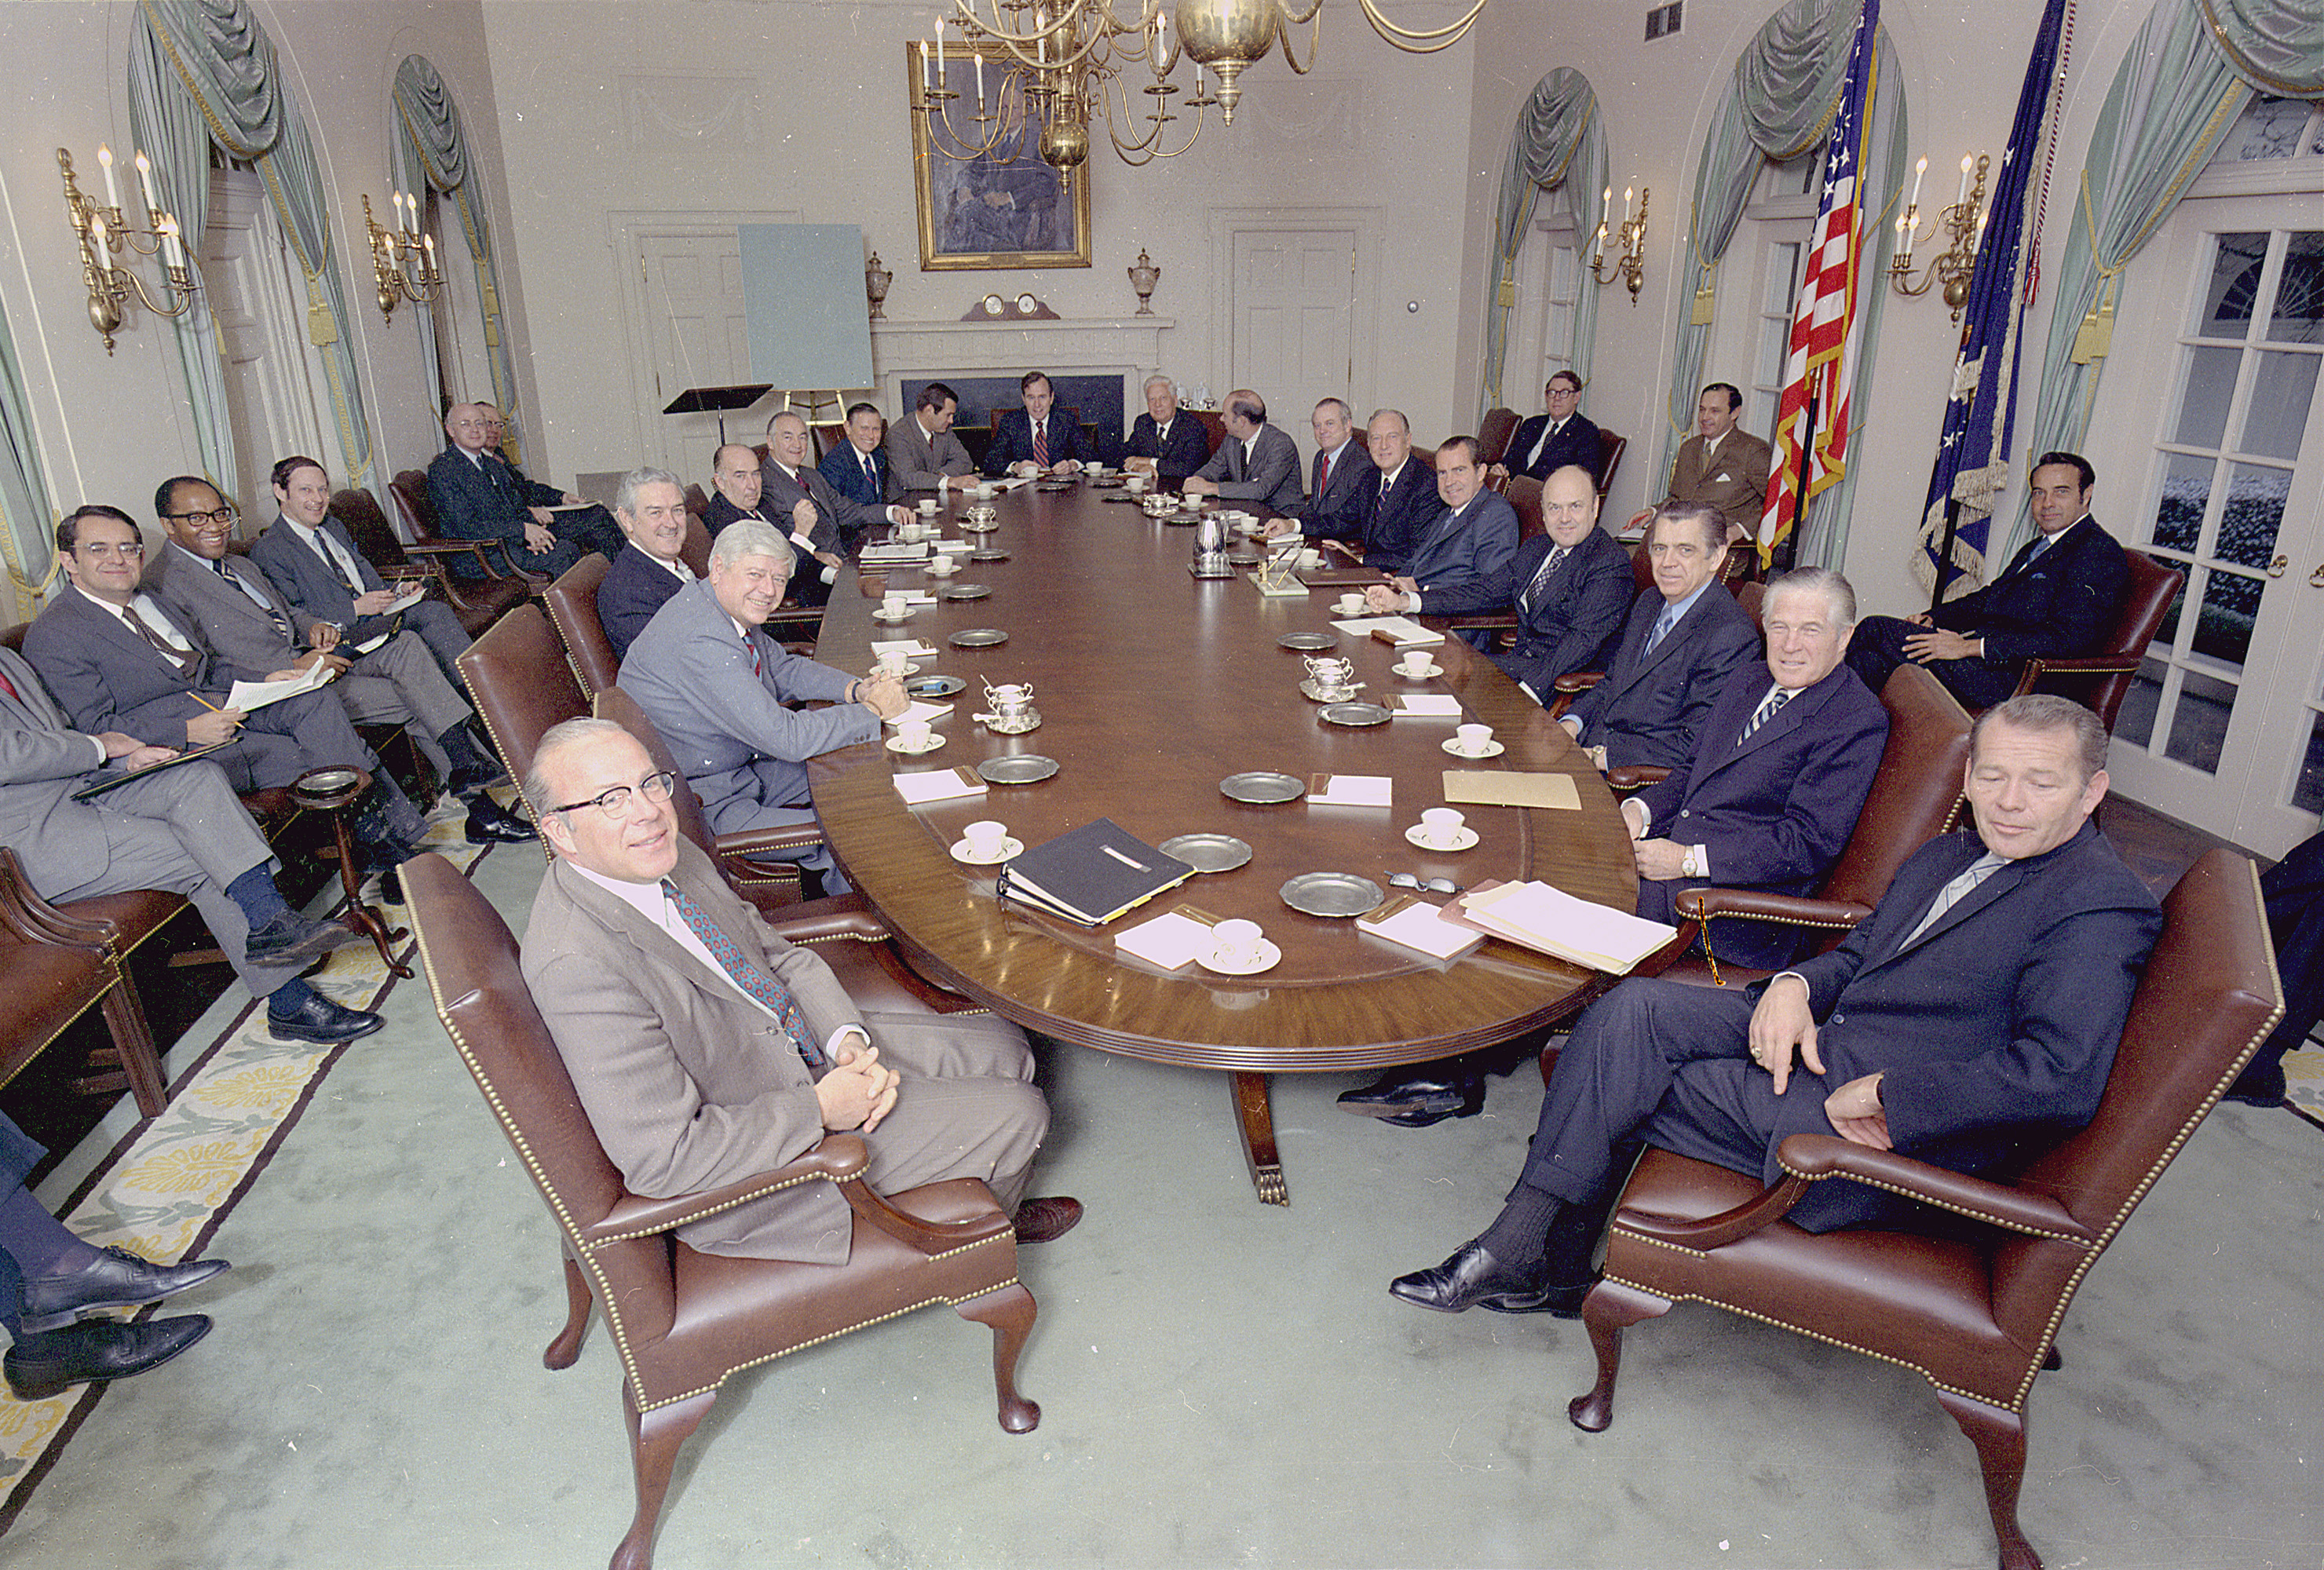 Richard M. Nixon posing with his cabinet in the cabinet room in the White House.